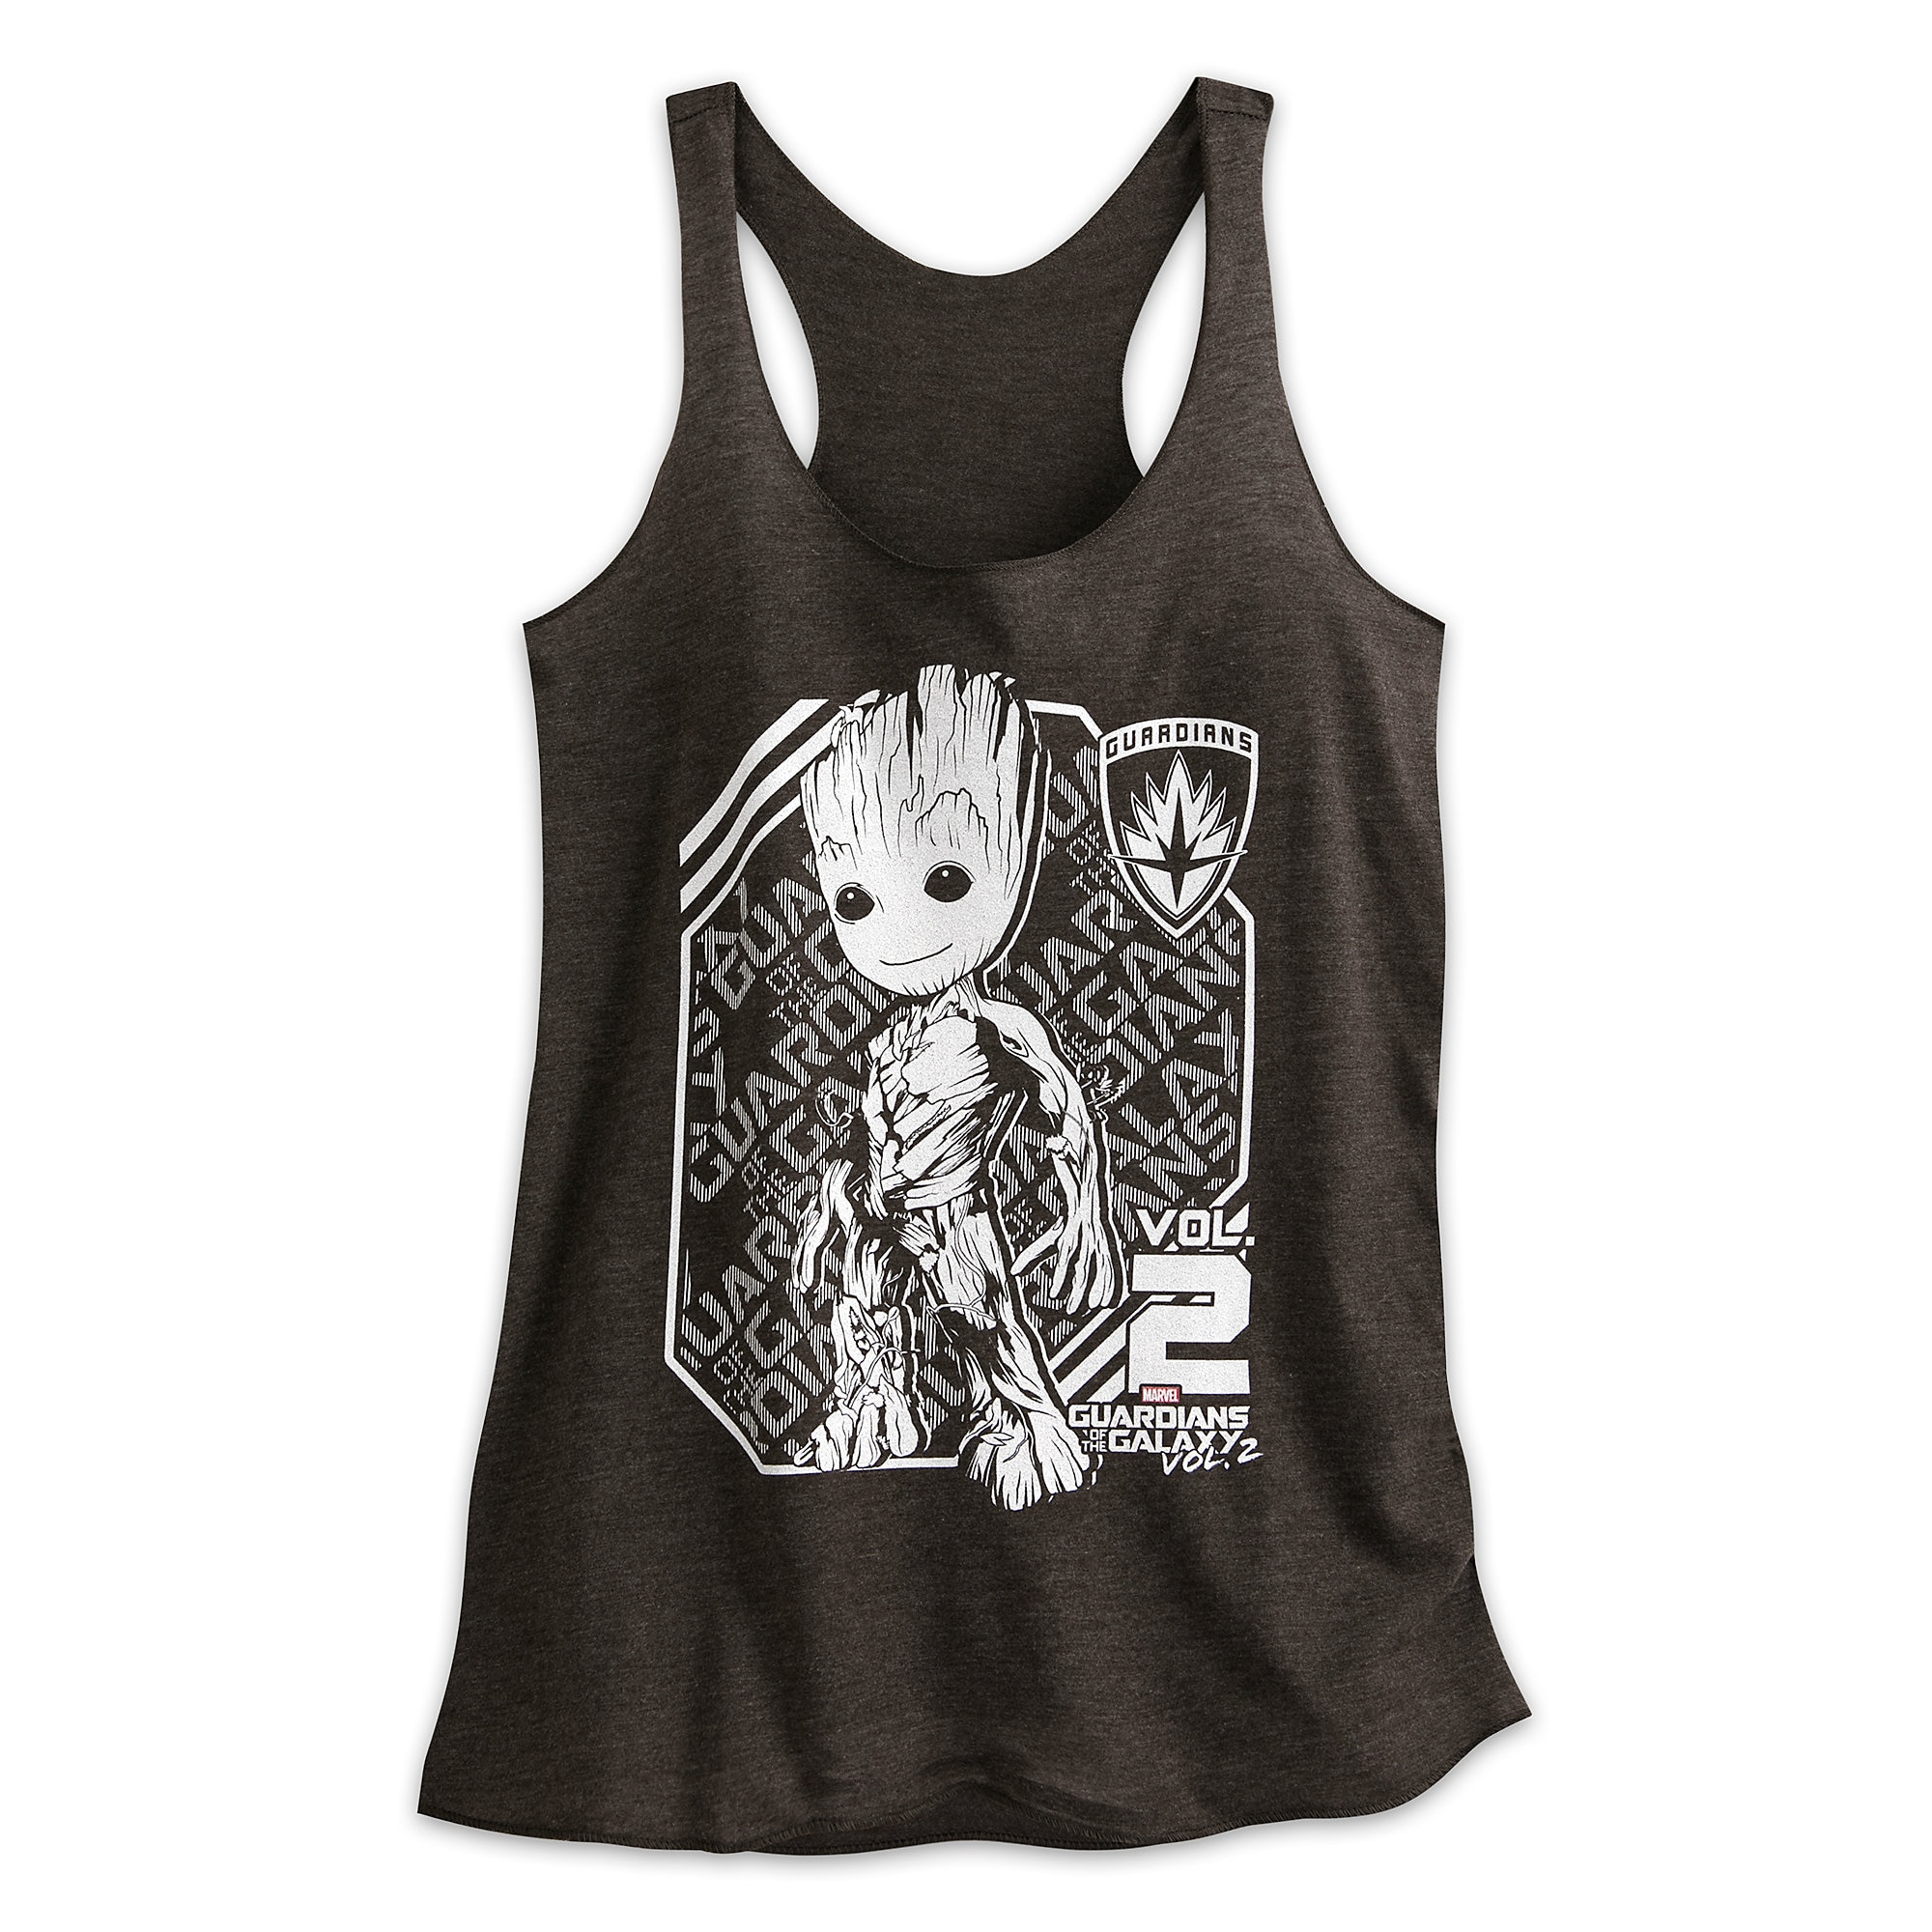 96a827481c42a Groot Heathered Tank Tee for Women - Guardians of the Galaxy Vol. 2 ...